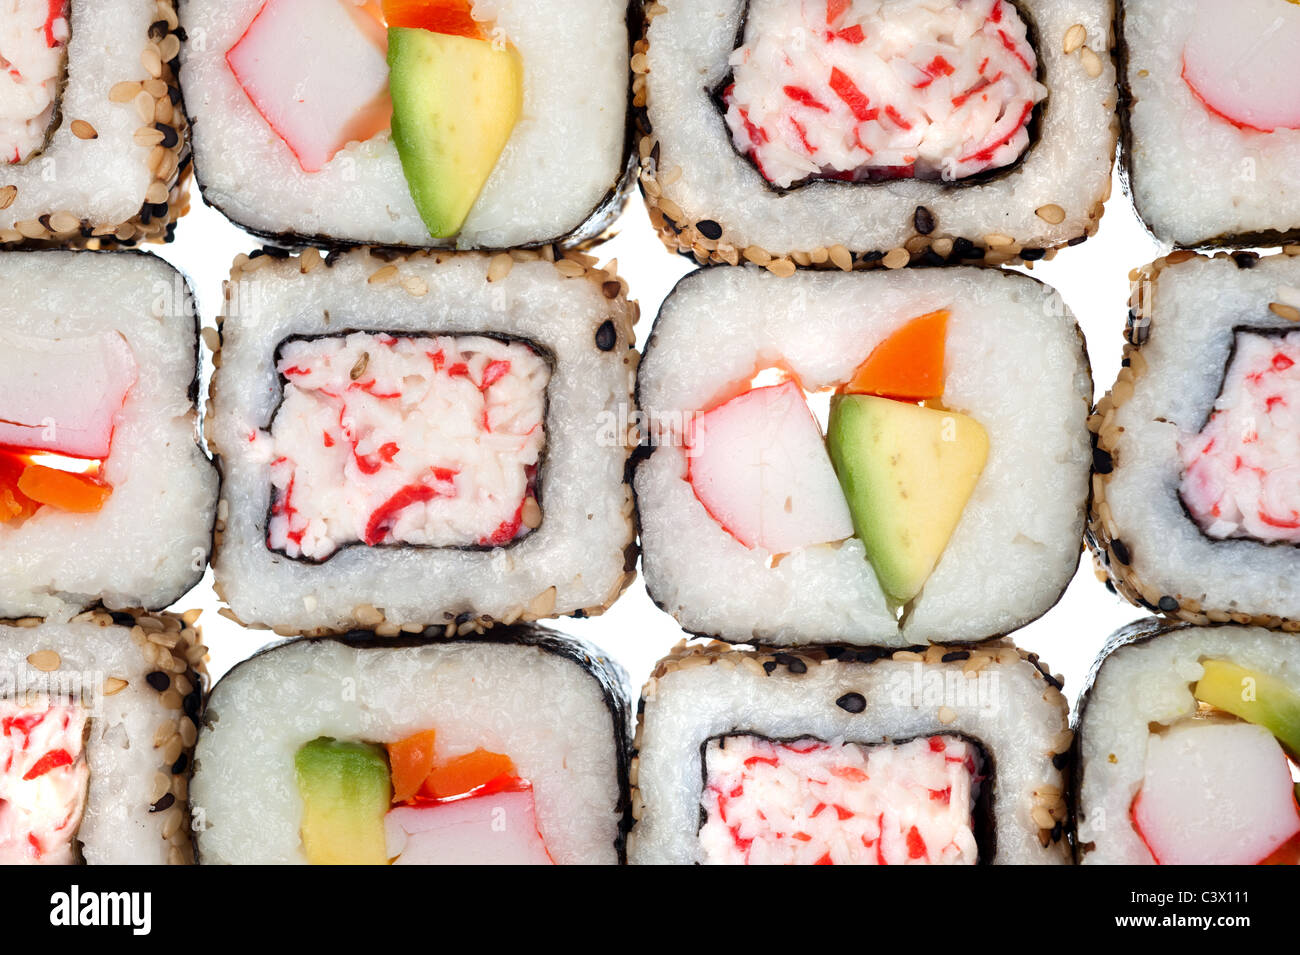 Colorful rolls of sushi - Stock Image